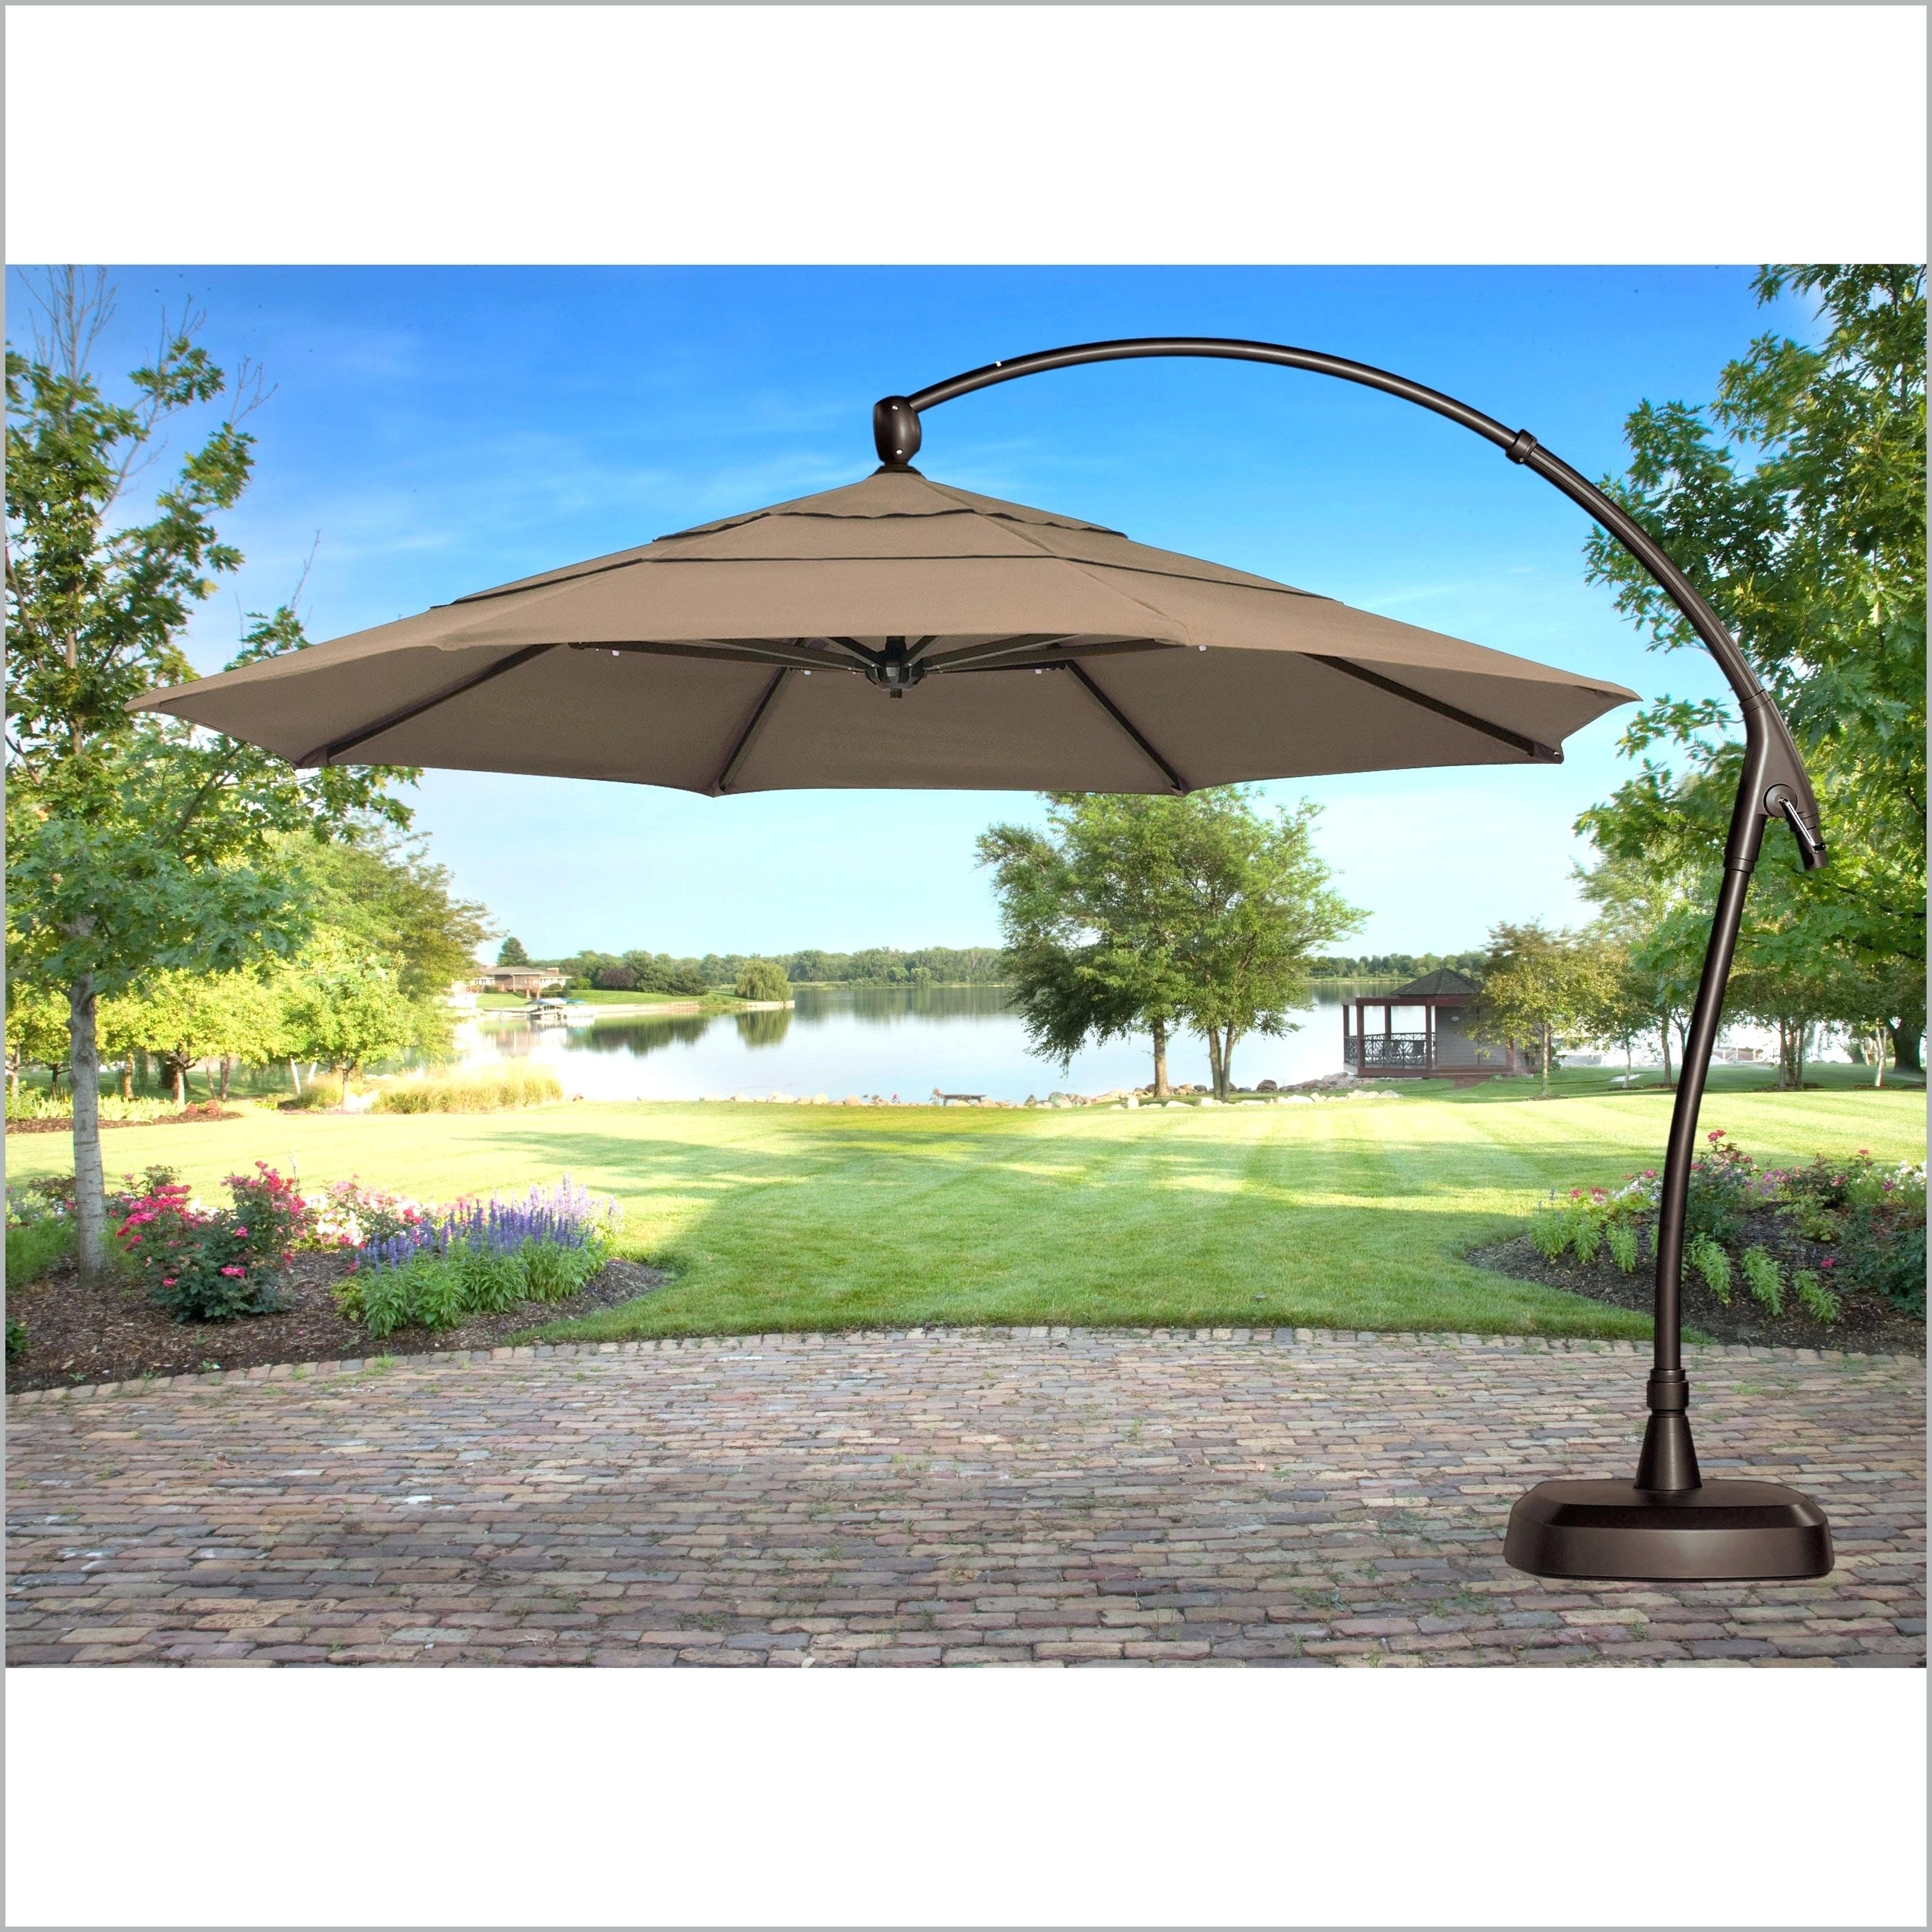 Lowes Patio Umbrellas Within 2018 Lowes Umbrella Base Patio Umbrellas With Lights Table Pics – Mrze (View 8 of 20)